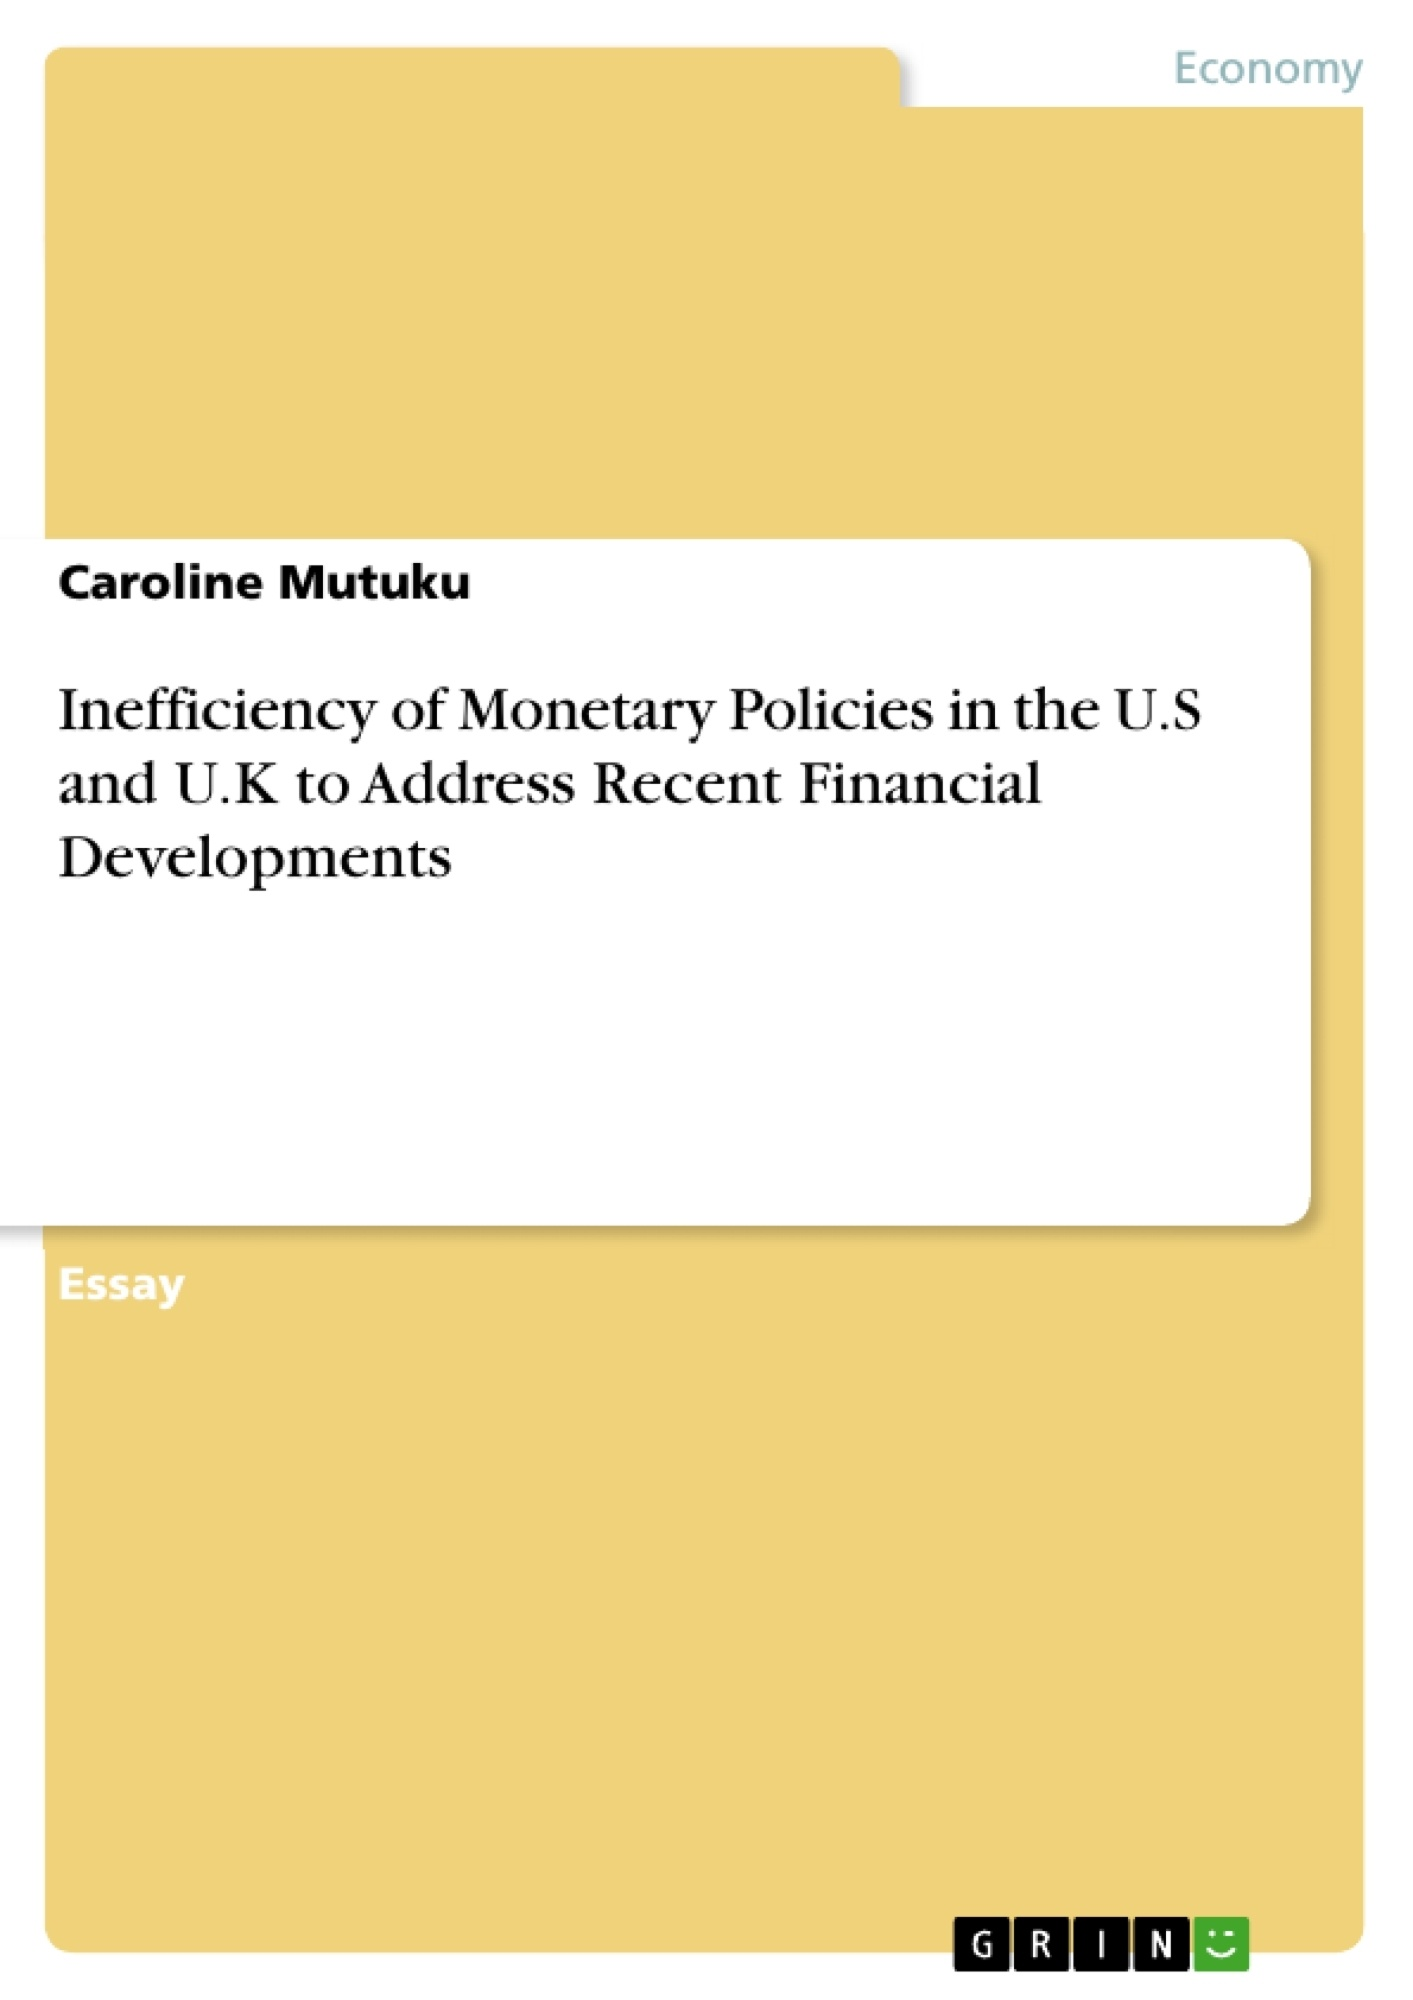 Title: Inefficiency of Monetary Policies in the U.S and U.K to Address Recent Financial Developments